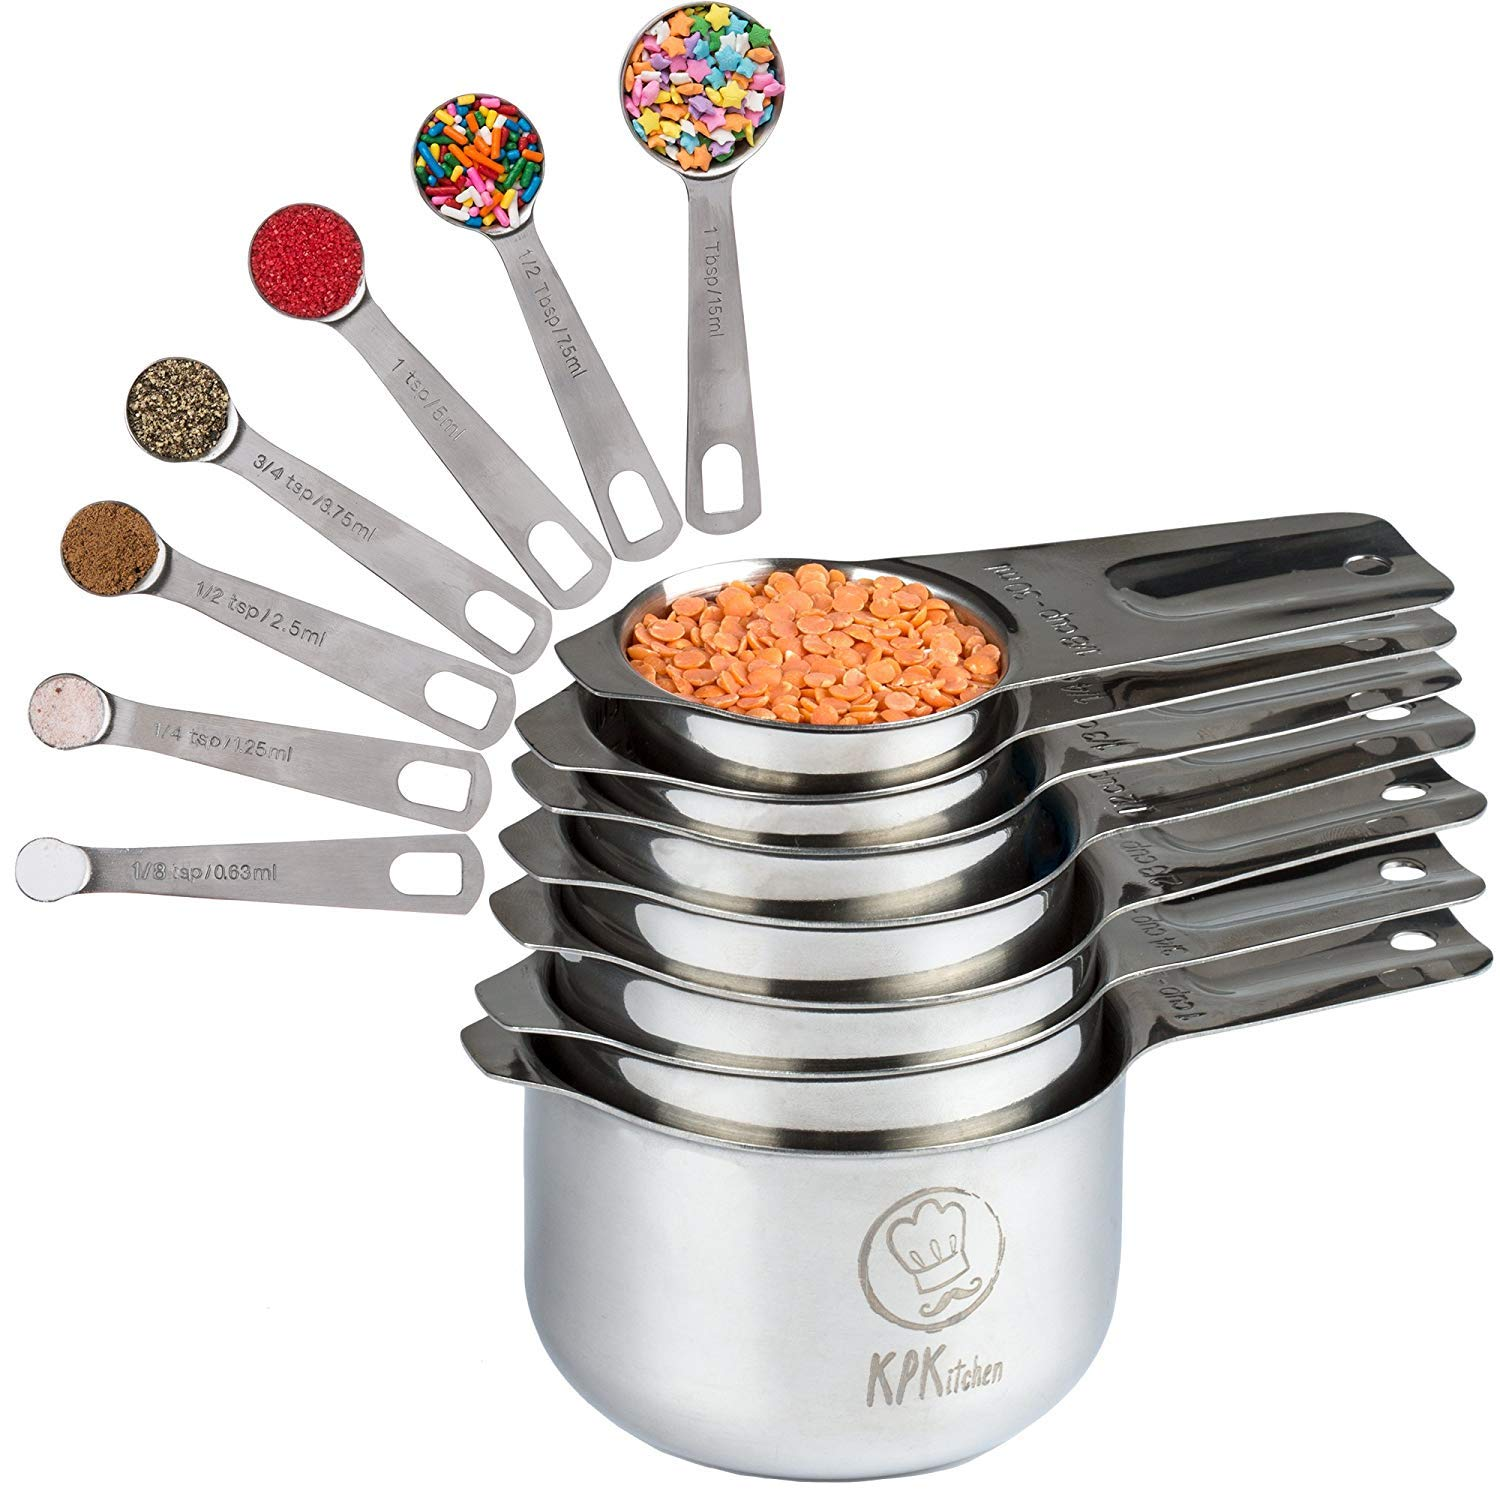 Stainless Steel Measuring Cups and Spoons Set: 7 Cup and 7 Spoon Metal Sets of 14 for Dry Measurement - Home Kitchen Gadget, Tool & Utensils for Cooking & Baking - Perfect Wedding or Housewarming Gift by KPKitchen